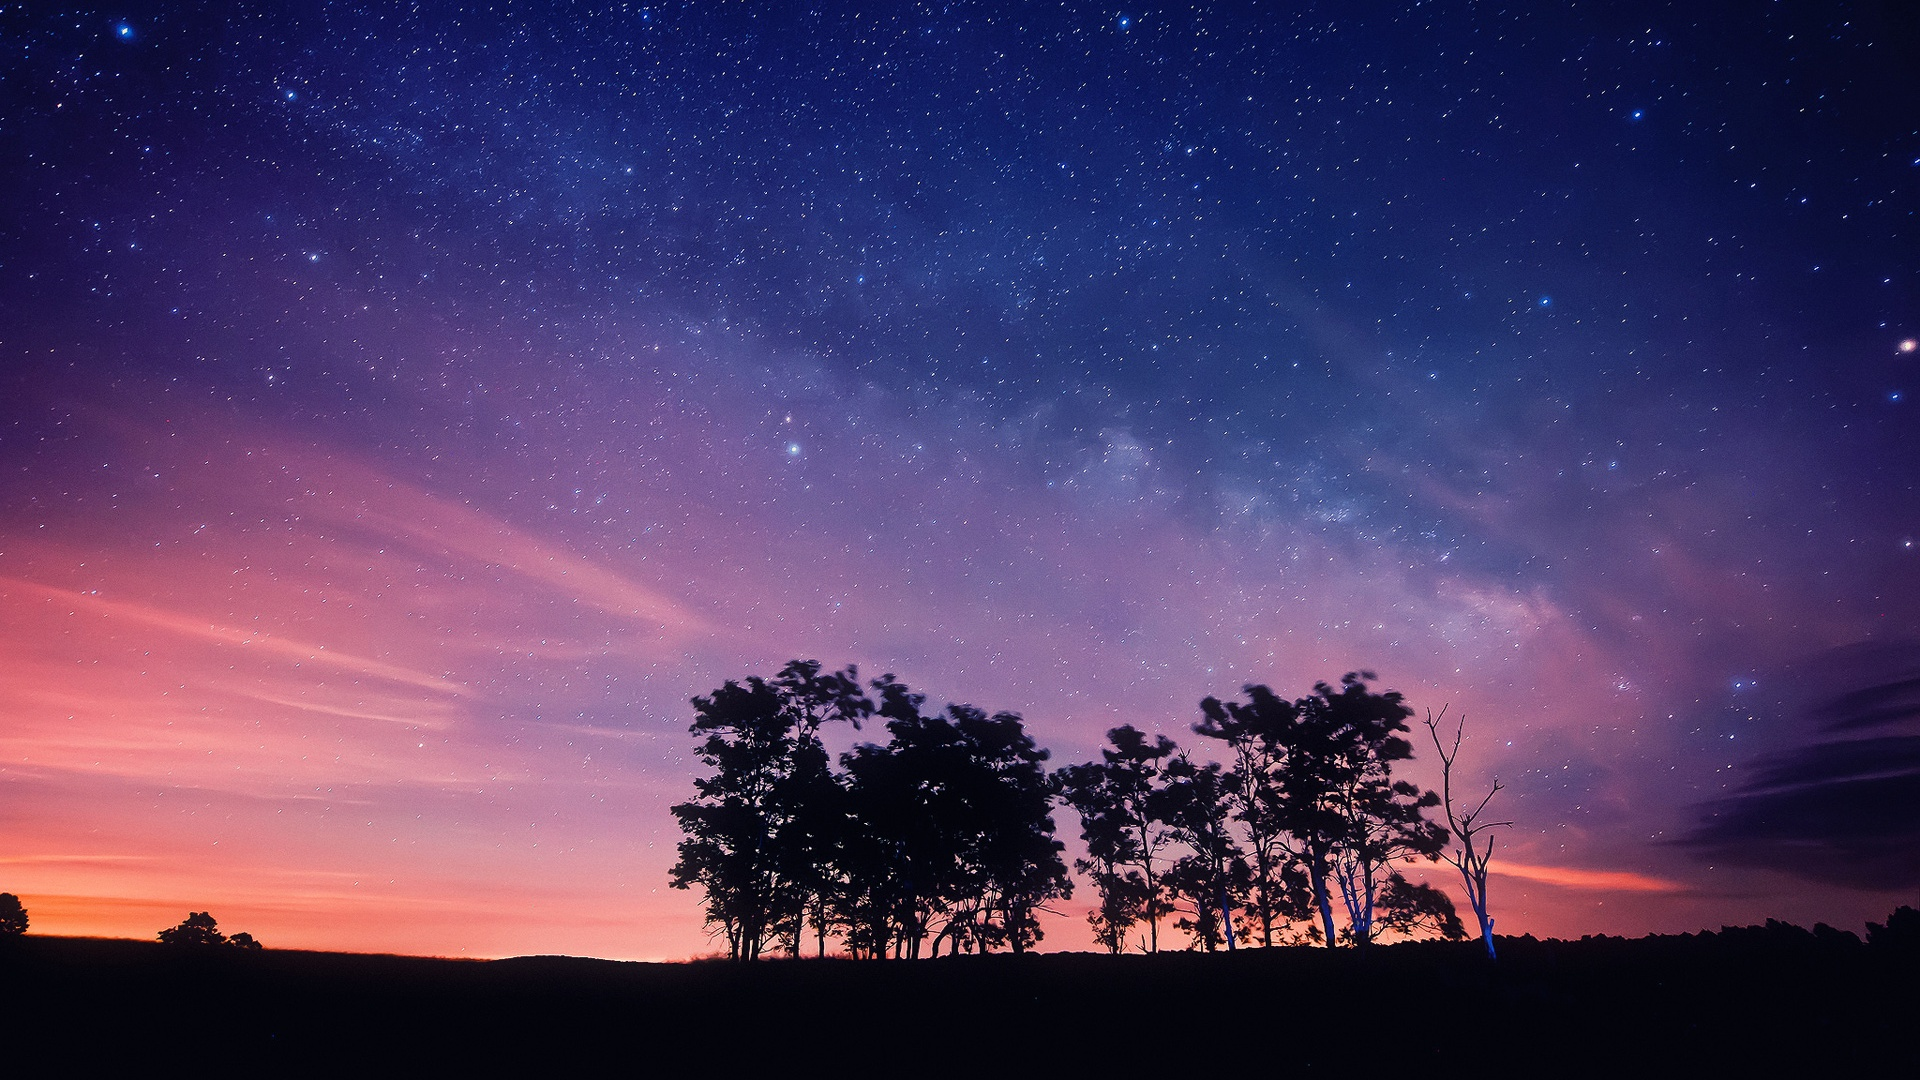 High Definition Wallpapers Hd Wallpapers Purple Night Sky Stars Trees Silhouettes